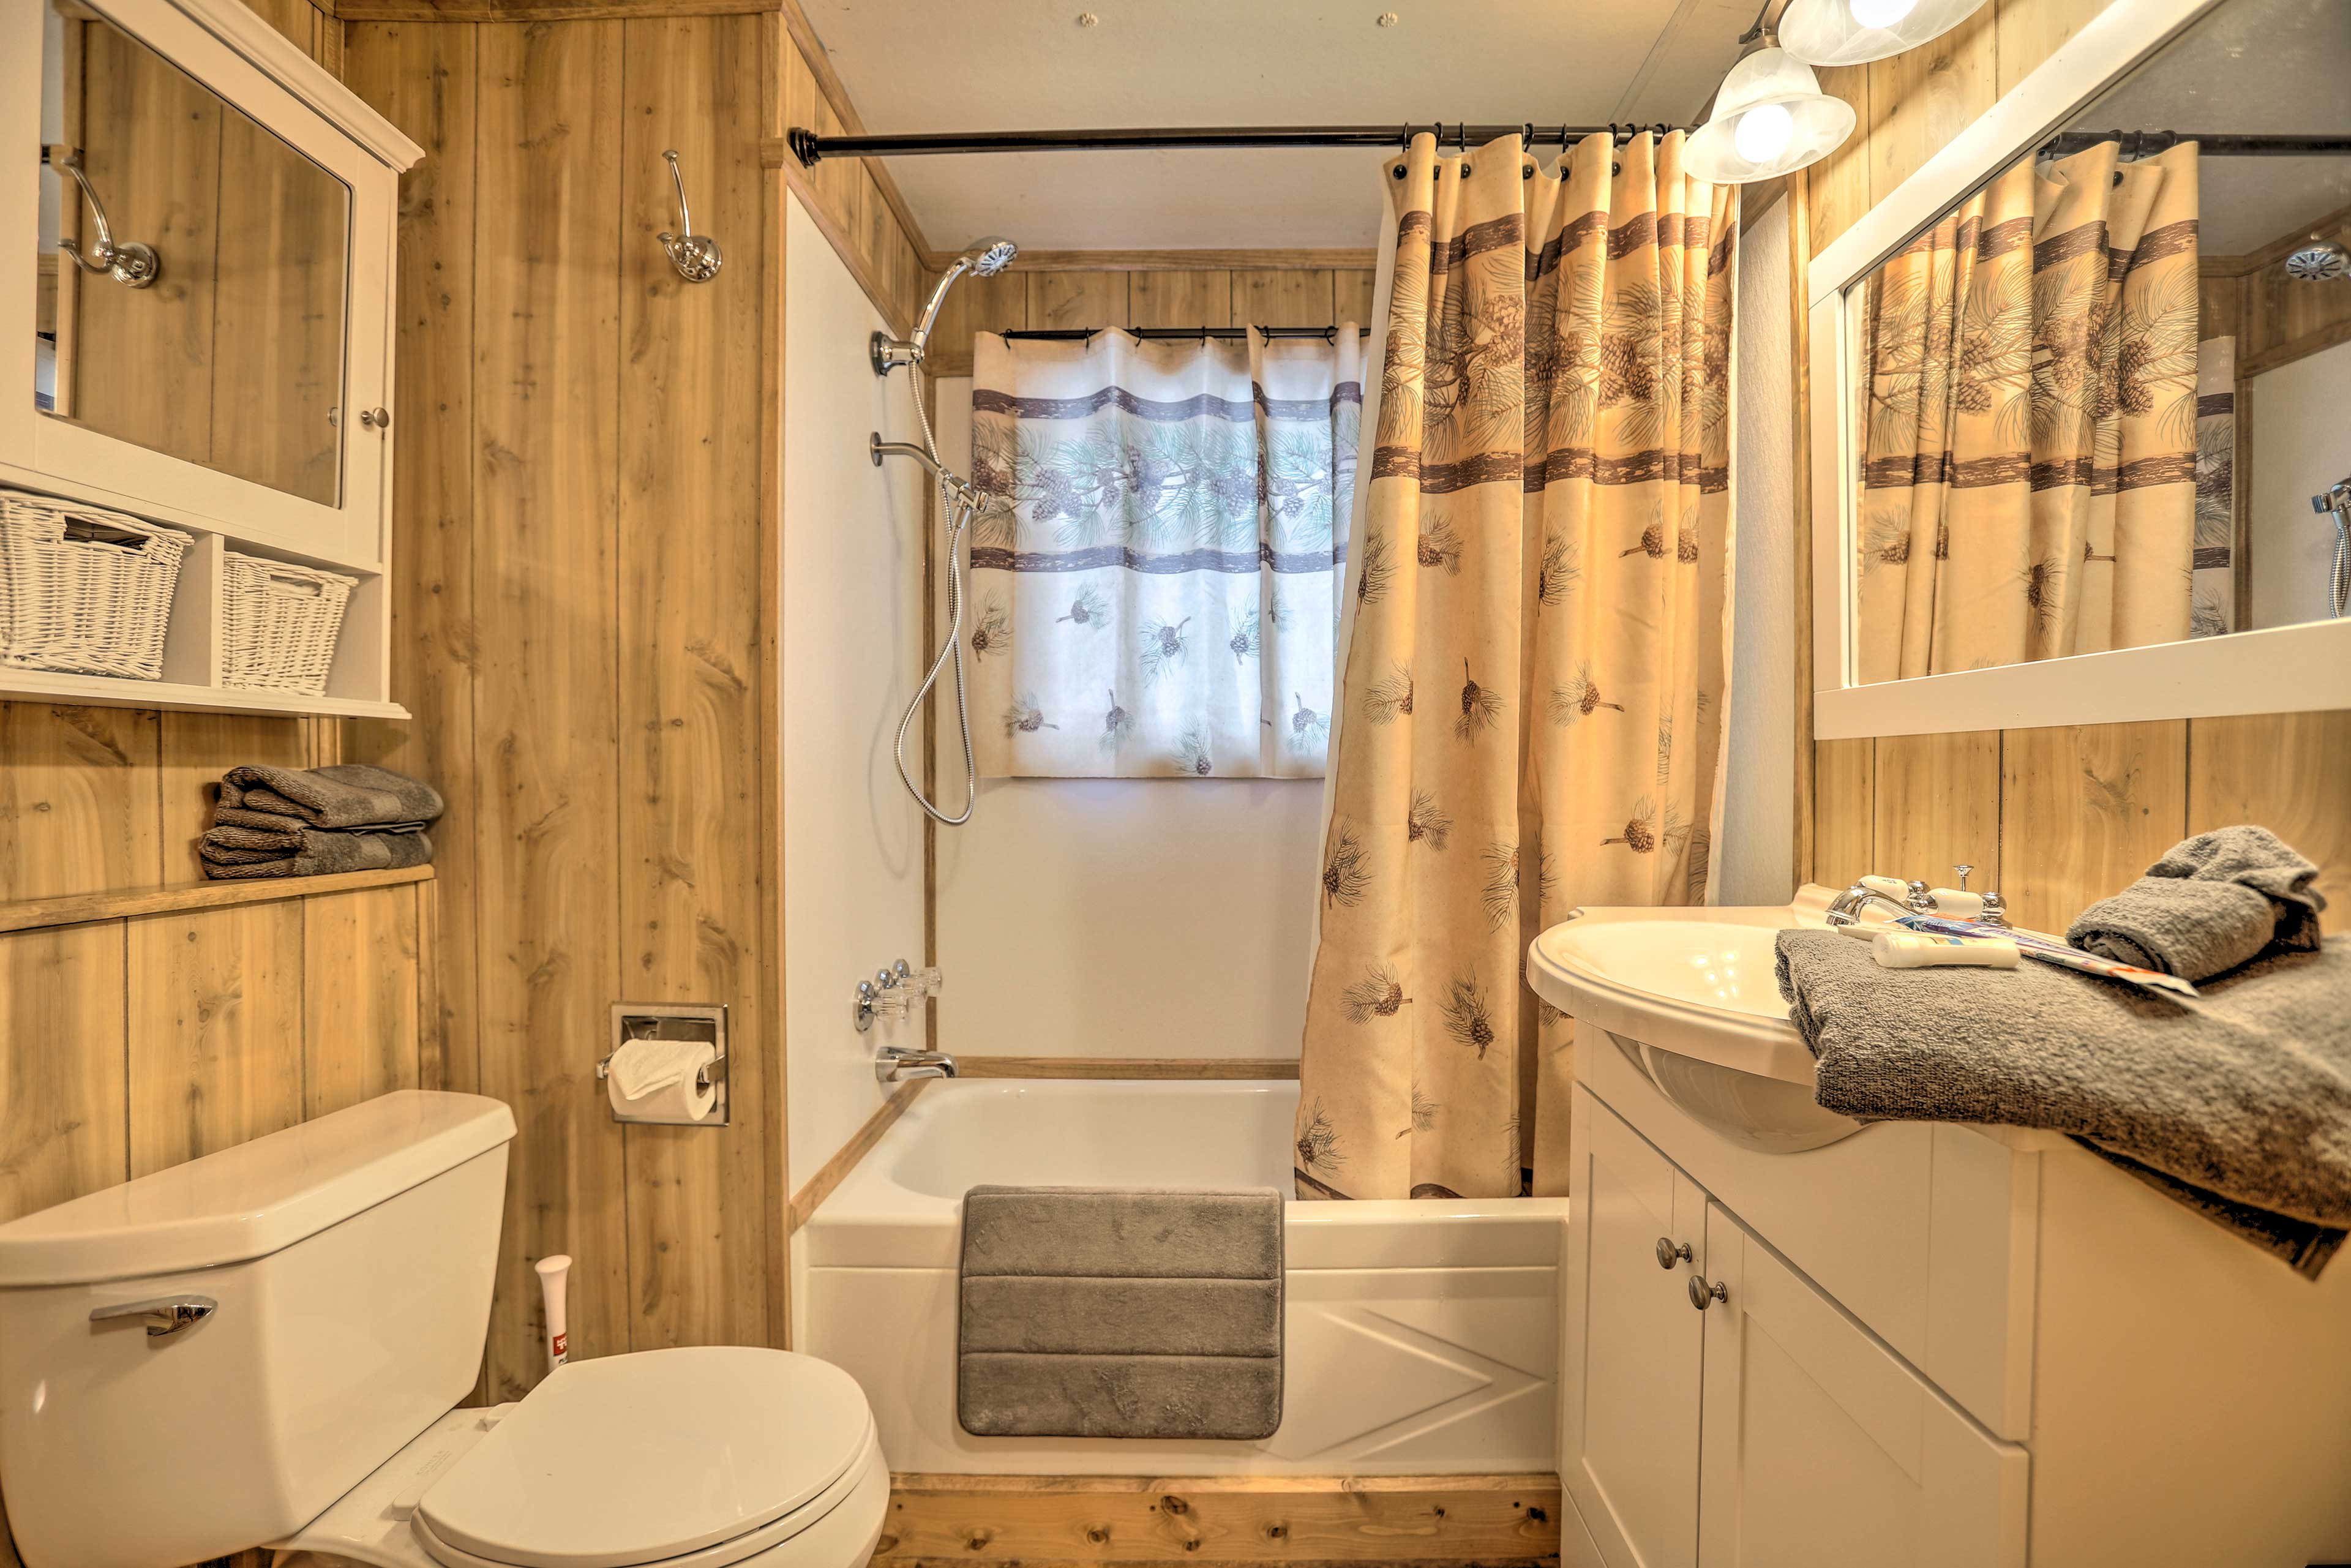 Rinse off the day in the shower/tub combo.